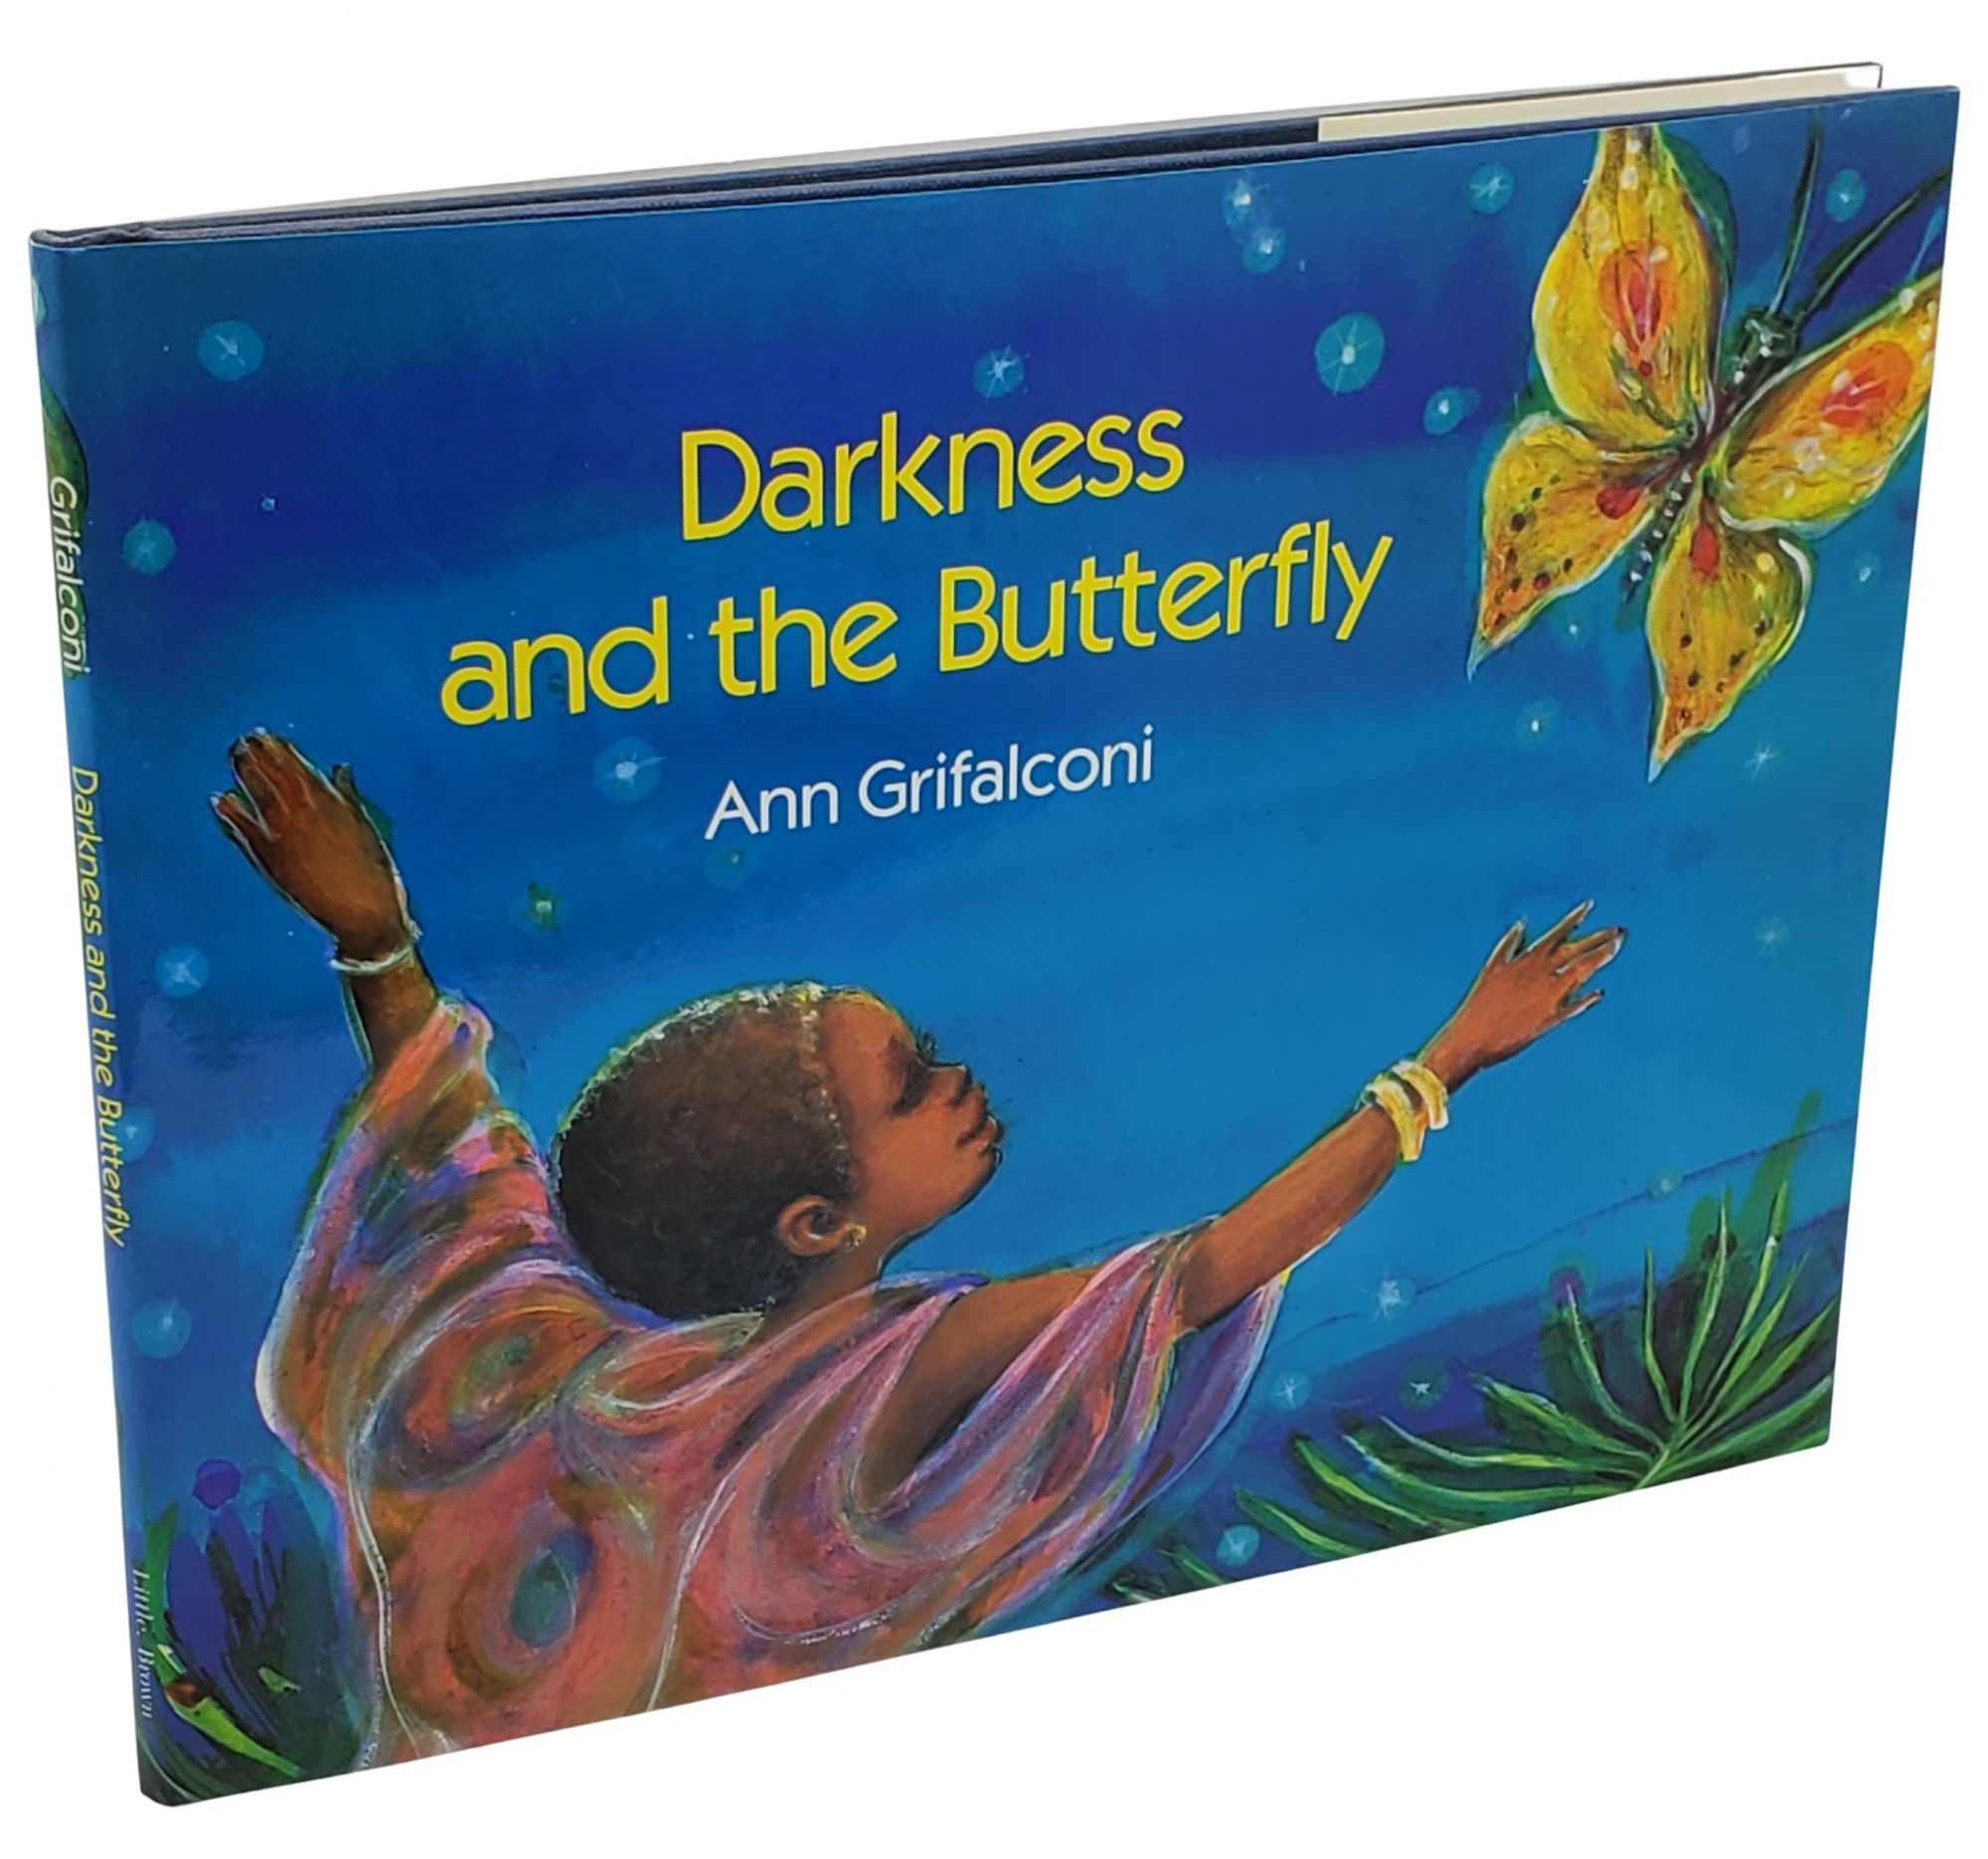 DARKNESS AND THE BUTTERFLY. Ann Grifalconi.